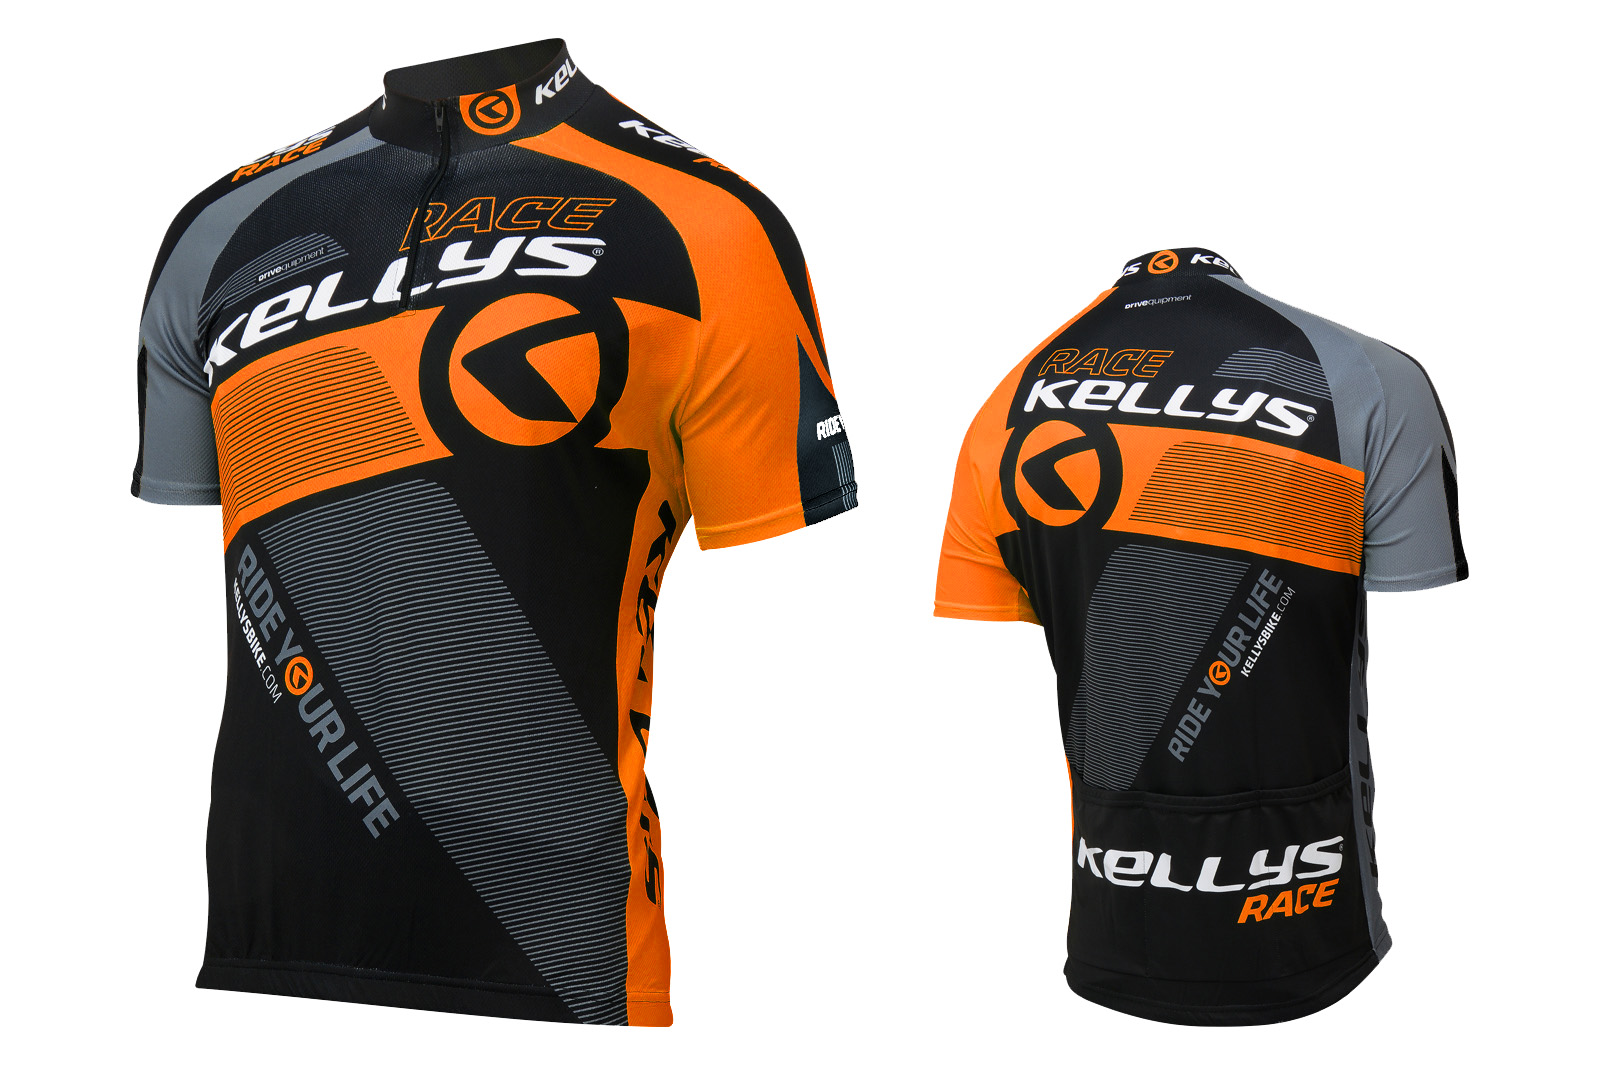 Kurzarmtrikot KELLYS PRO Race orange - XL - Kurzarmtrikot KELLYS PRO Race orange - XL